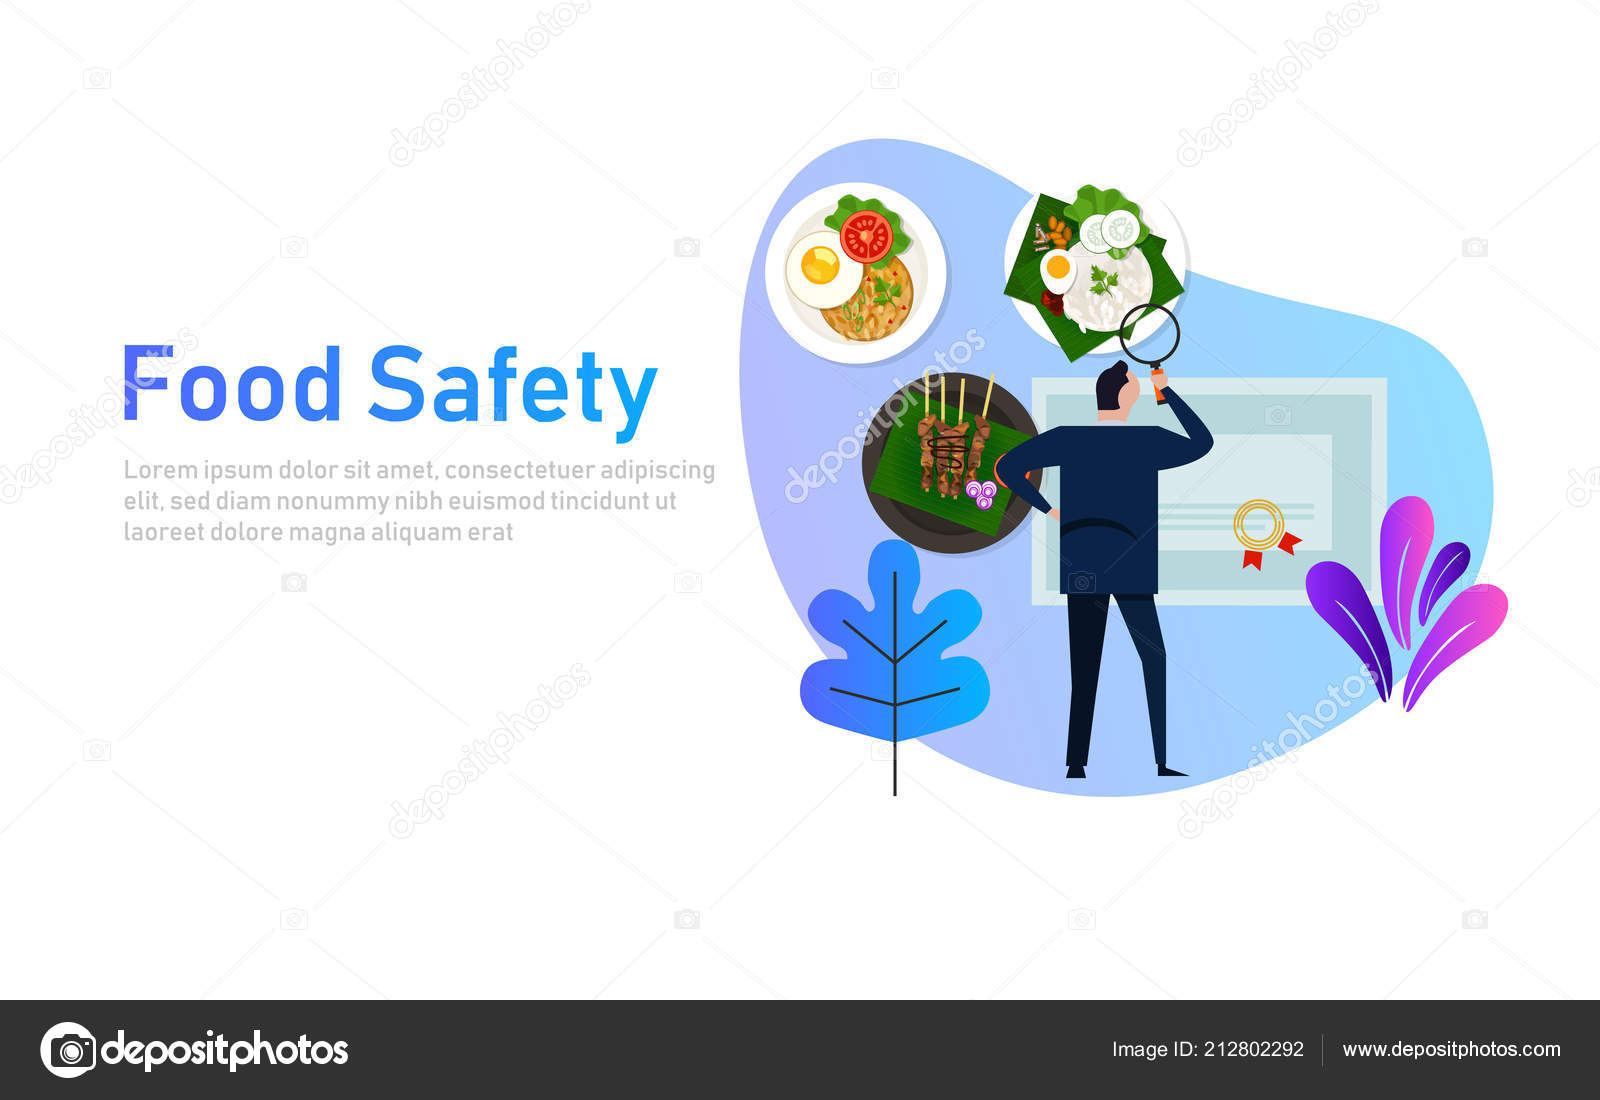 Food safety concept of standard compliance  Man looking at